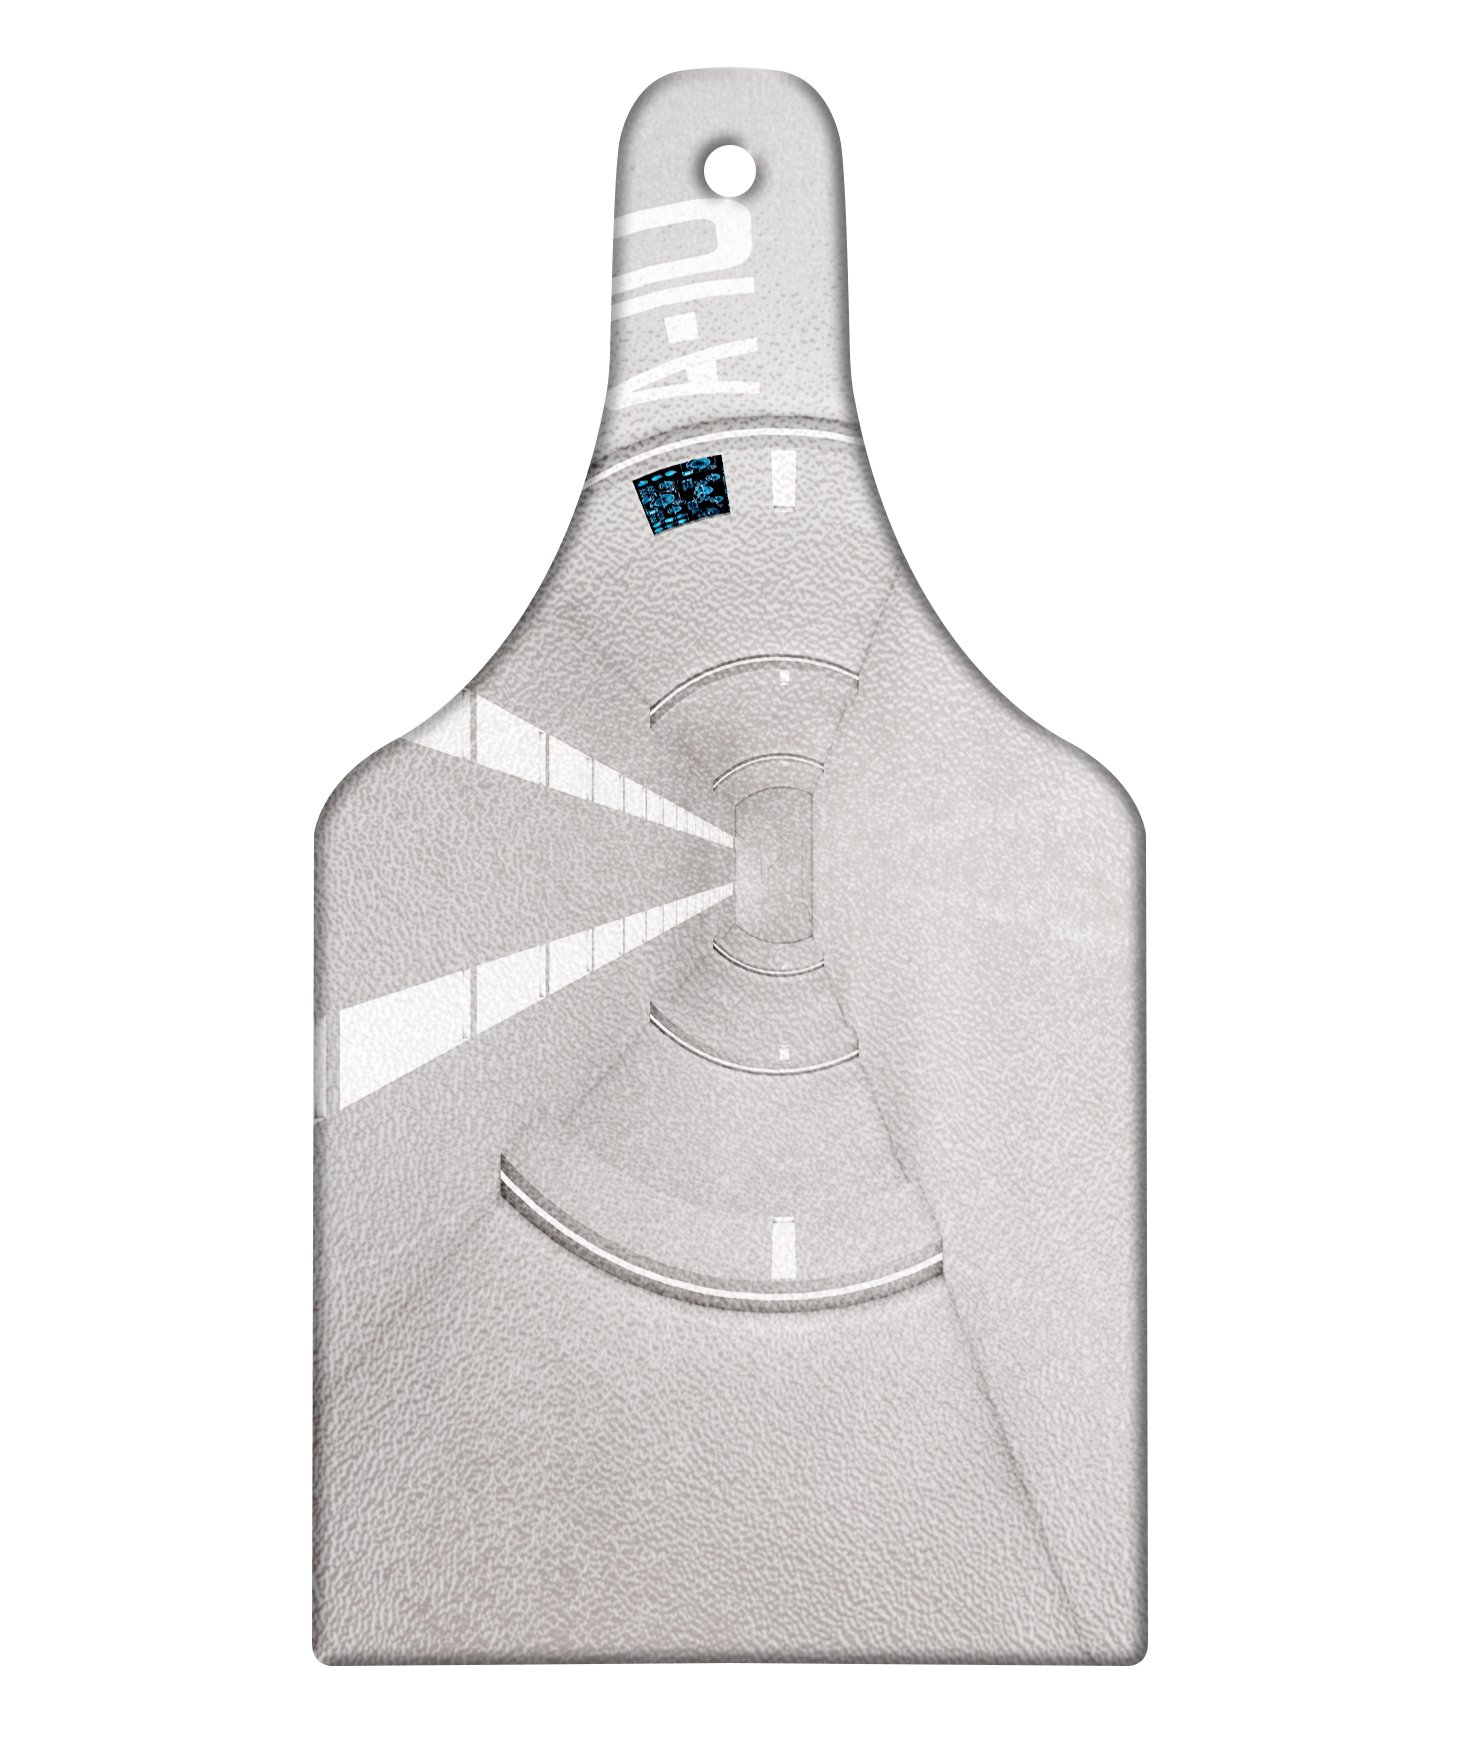 Lunarable Outer Space Cutting Board, Corridor of Spacecraft Architecture Arrival to Solar System Time Travel Scenery, Decorative Tempered Glass Cutting and Serving Board, Wine Bottle Shape, White